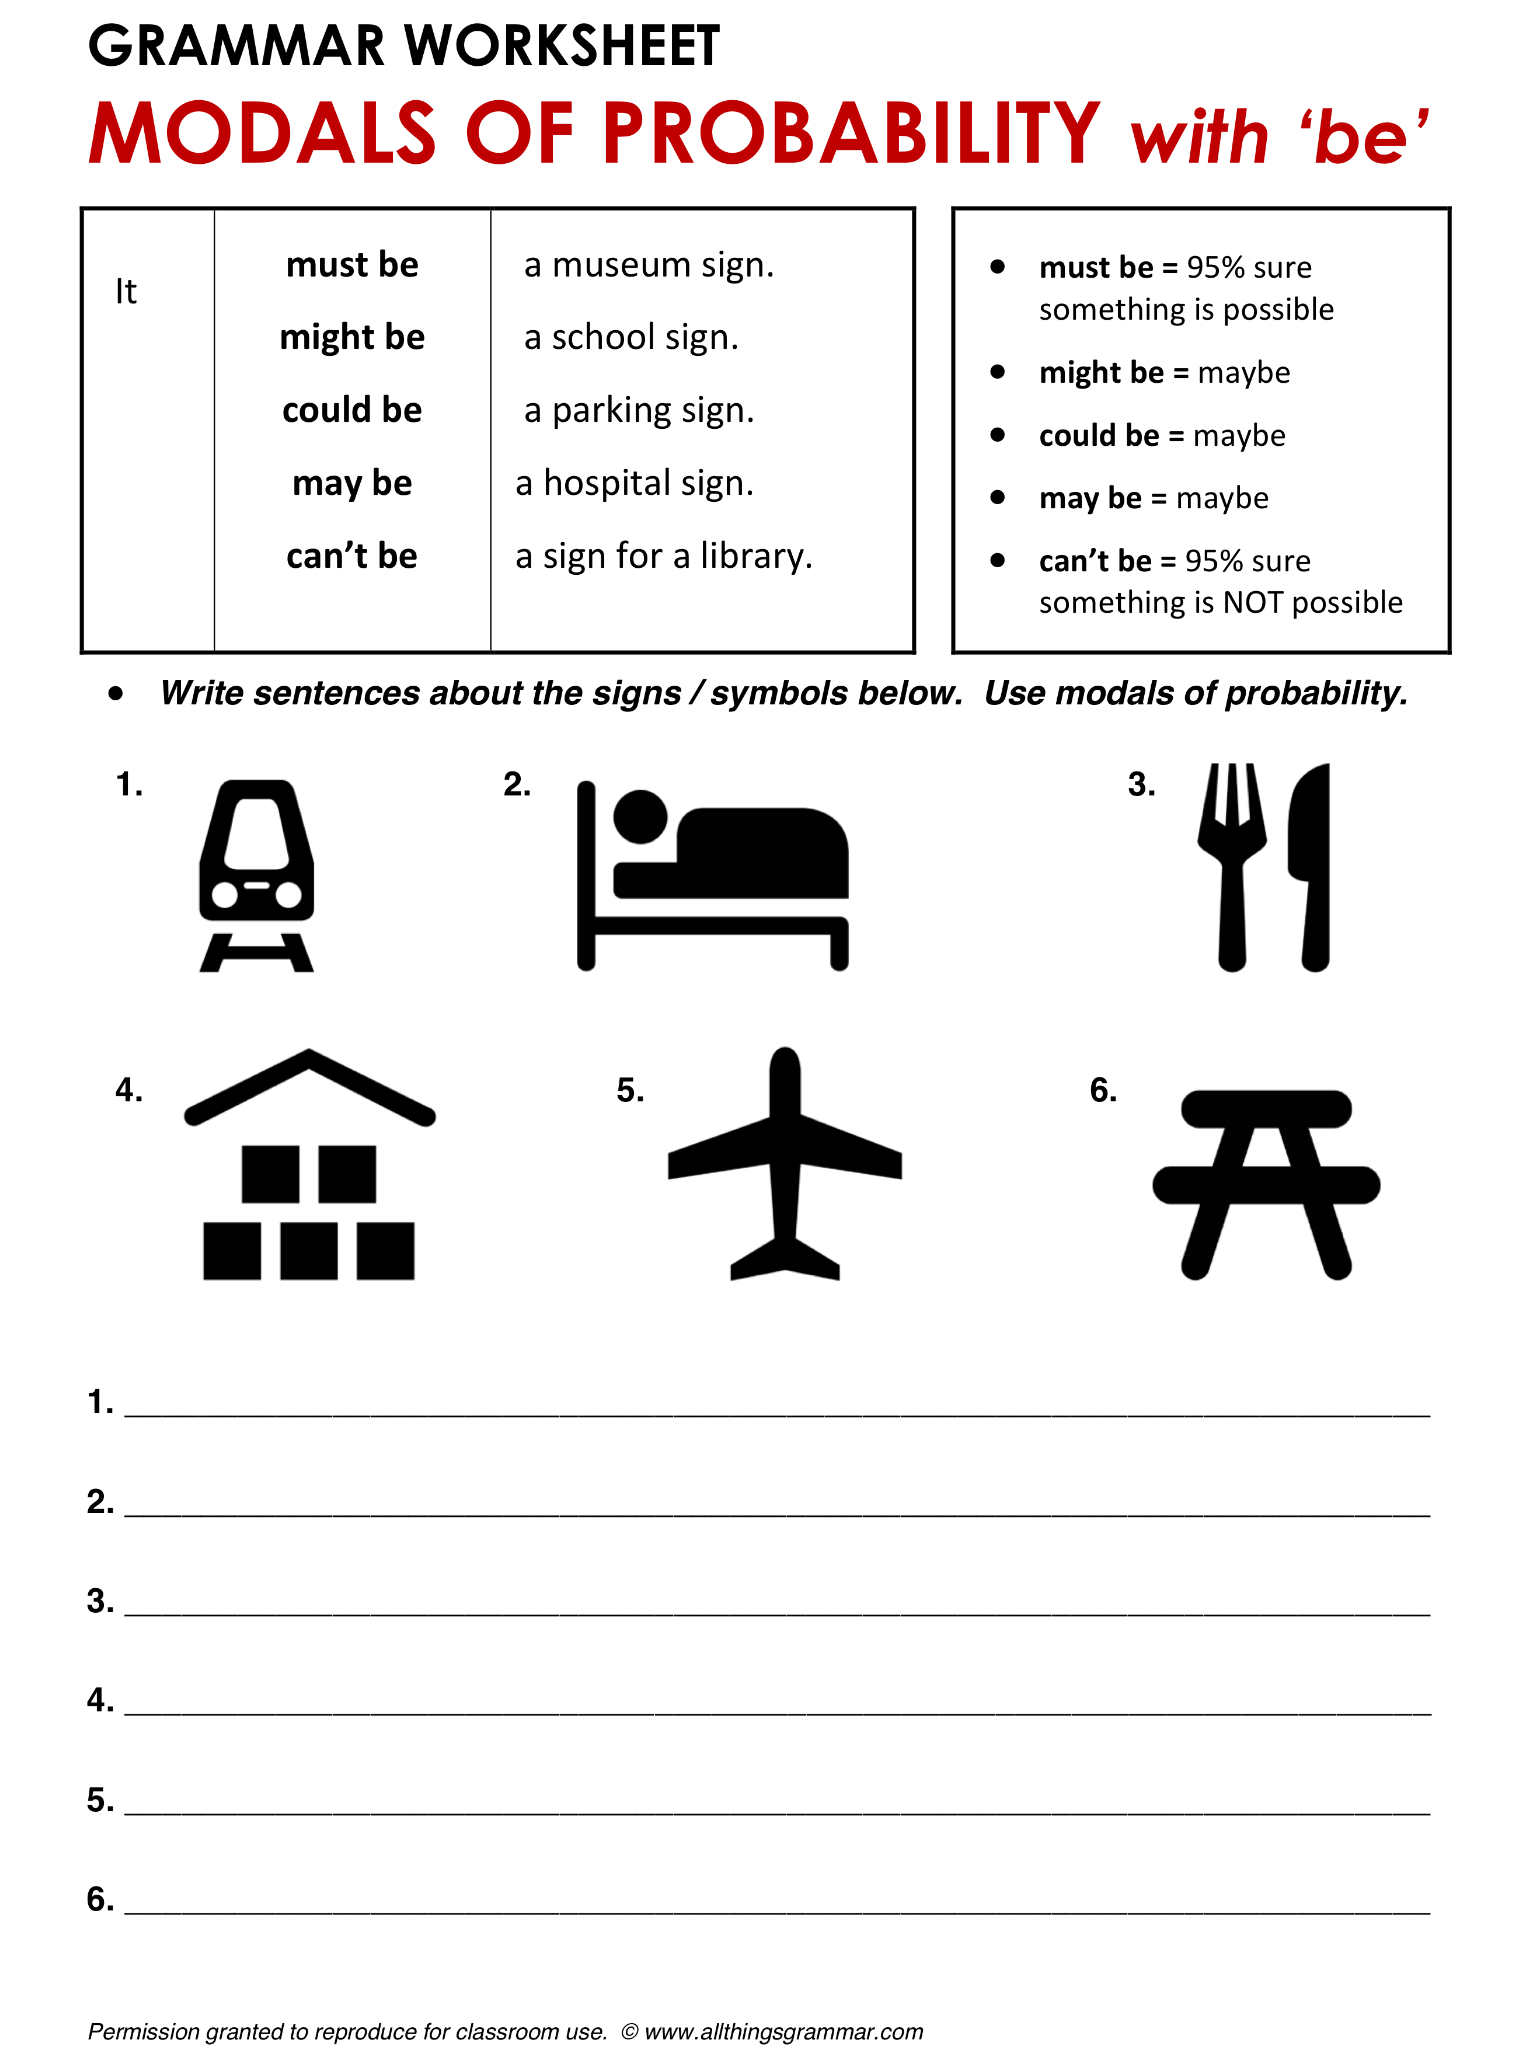 English Grammar Worksheet Modals Of Probability With Be